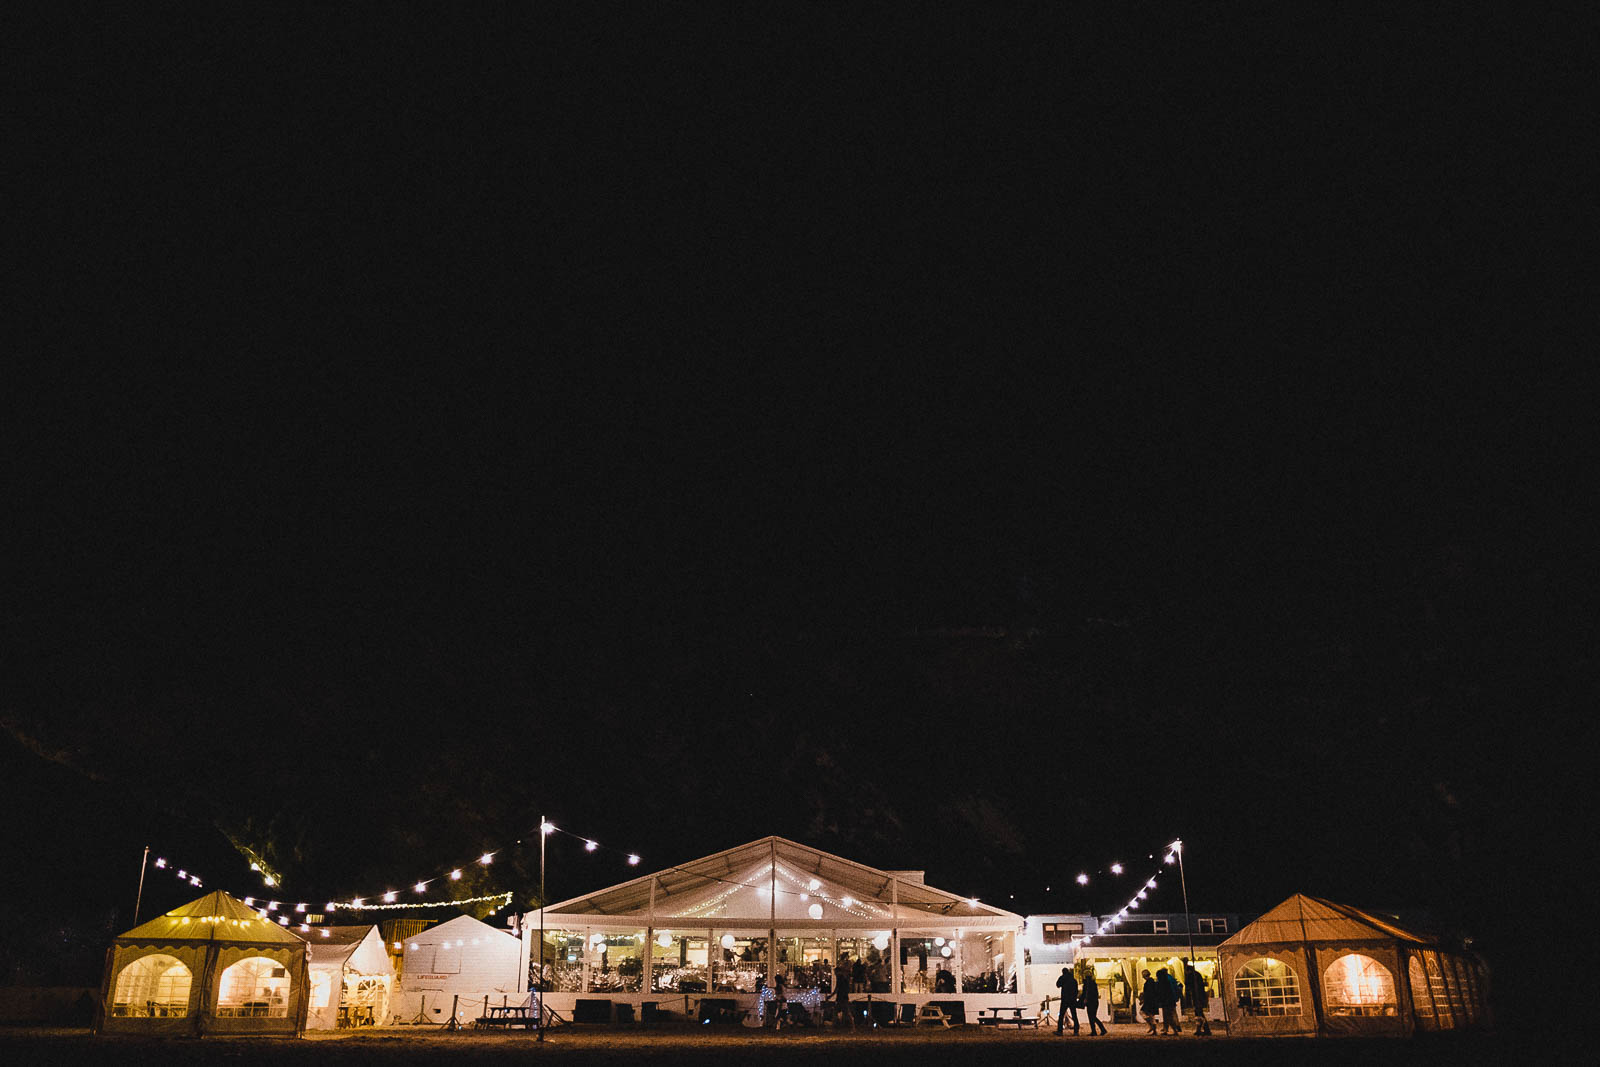 Lusty Glaze wedding venue at night, lit up by festoon lighting.